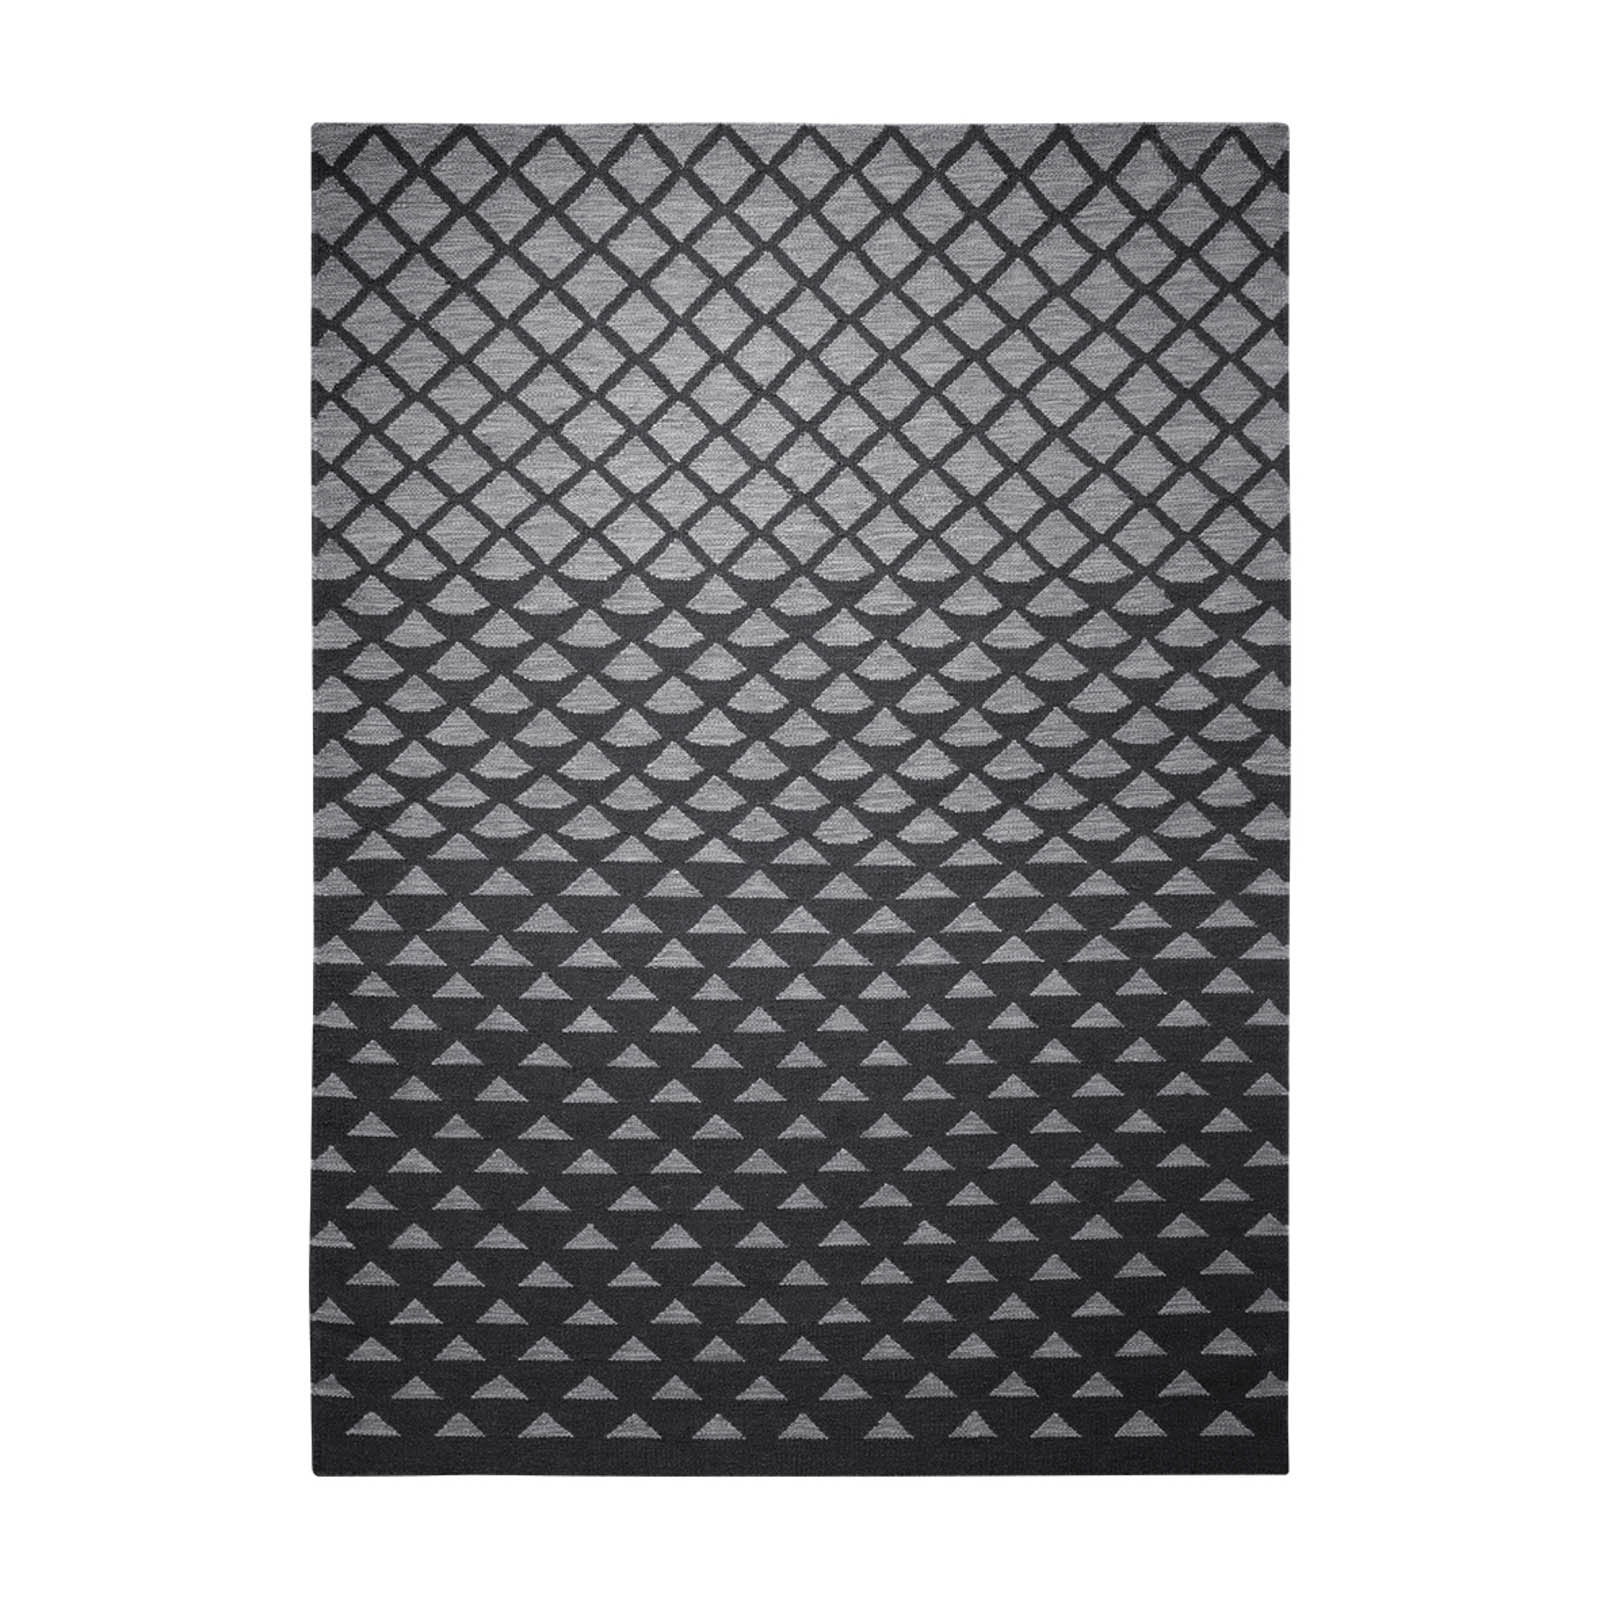 Esprit Wanda Rugs 1406 01 in Black and Grey